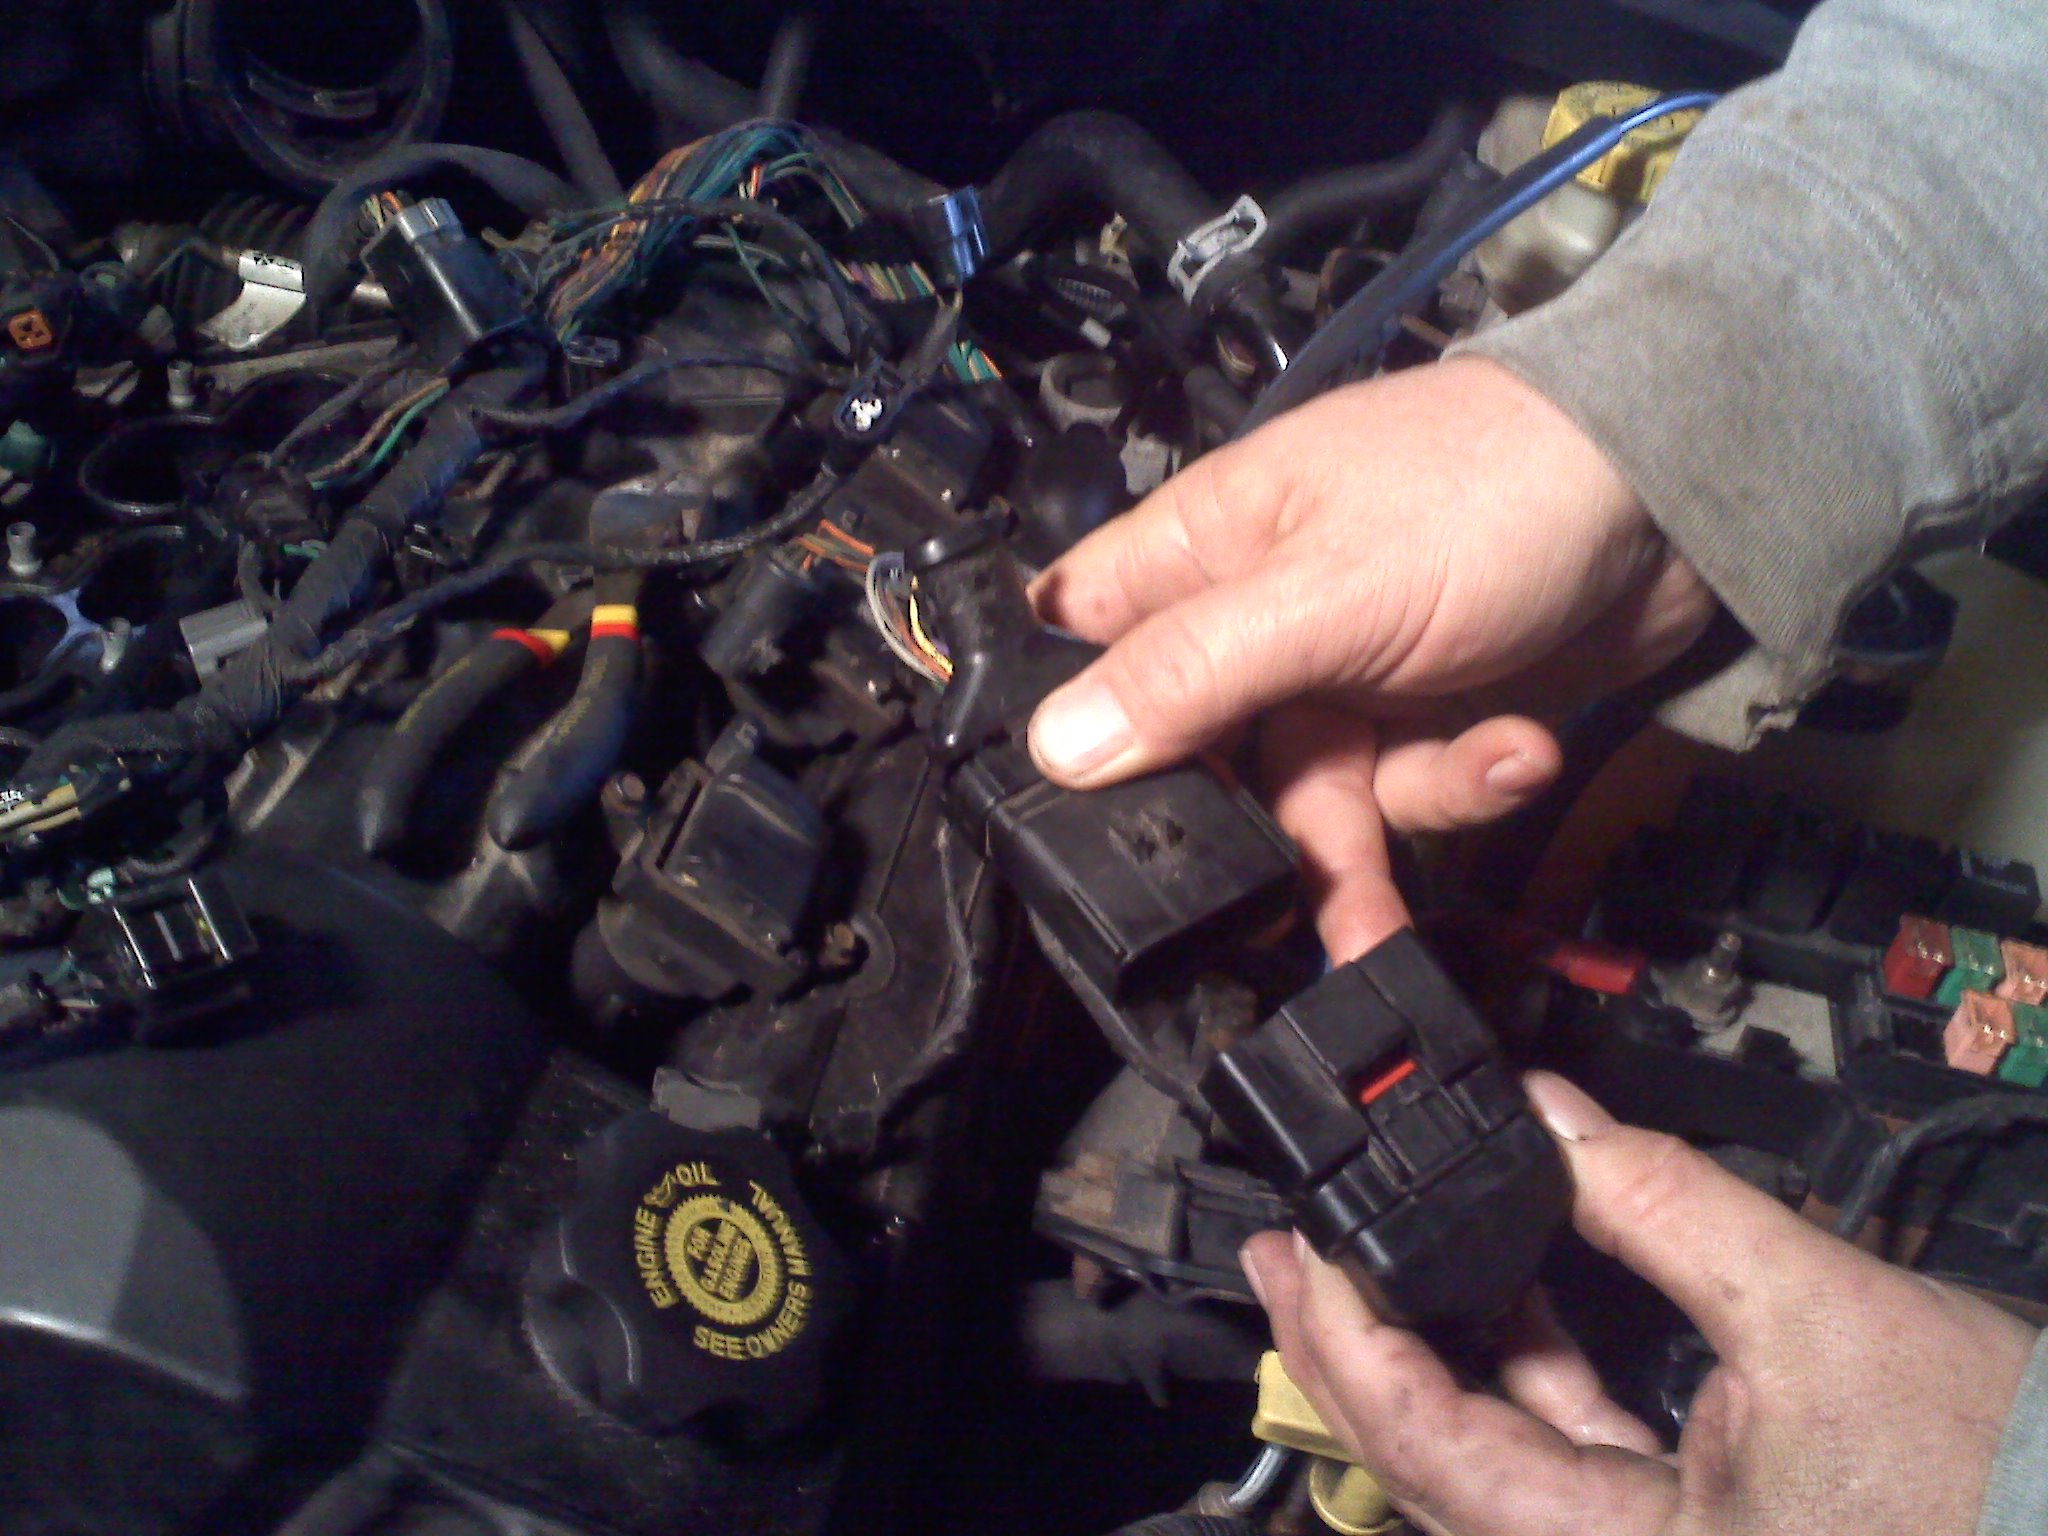 2013 01 14_214131_20130114145525 why does my ignition coil fuse keep blowing in my 2001 dodge intrepid? 2001 Dodge Intrepid Neutral Safety Switch at soozxer.org